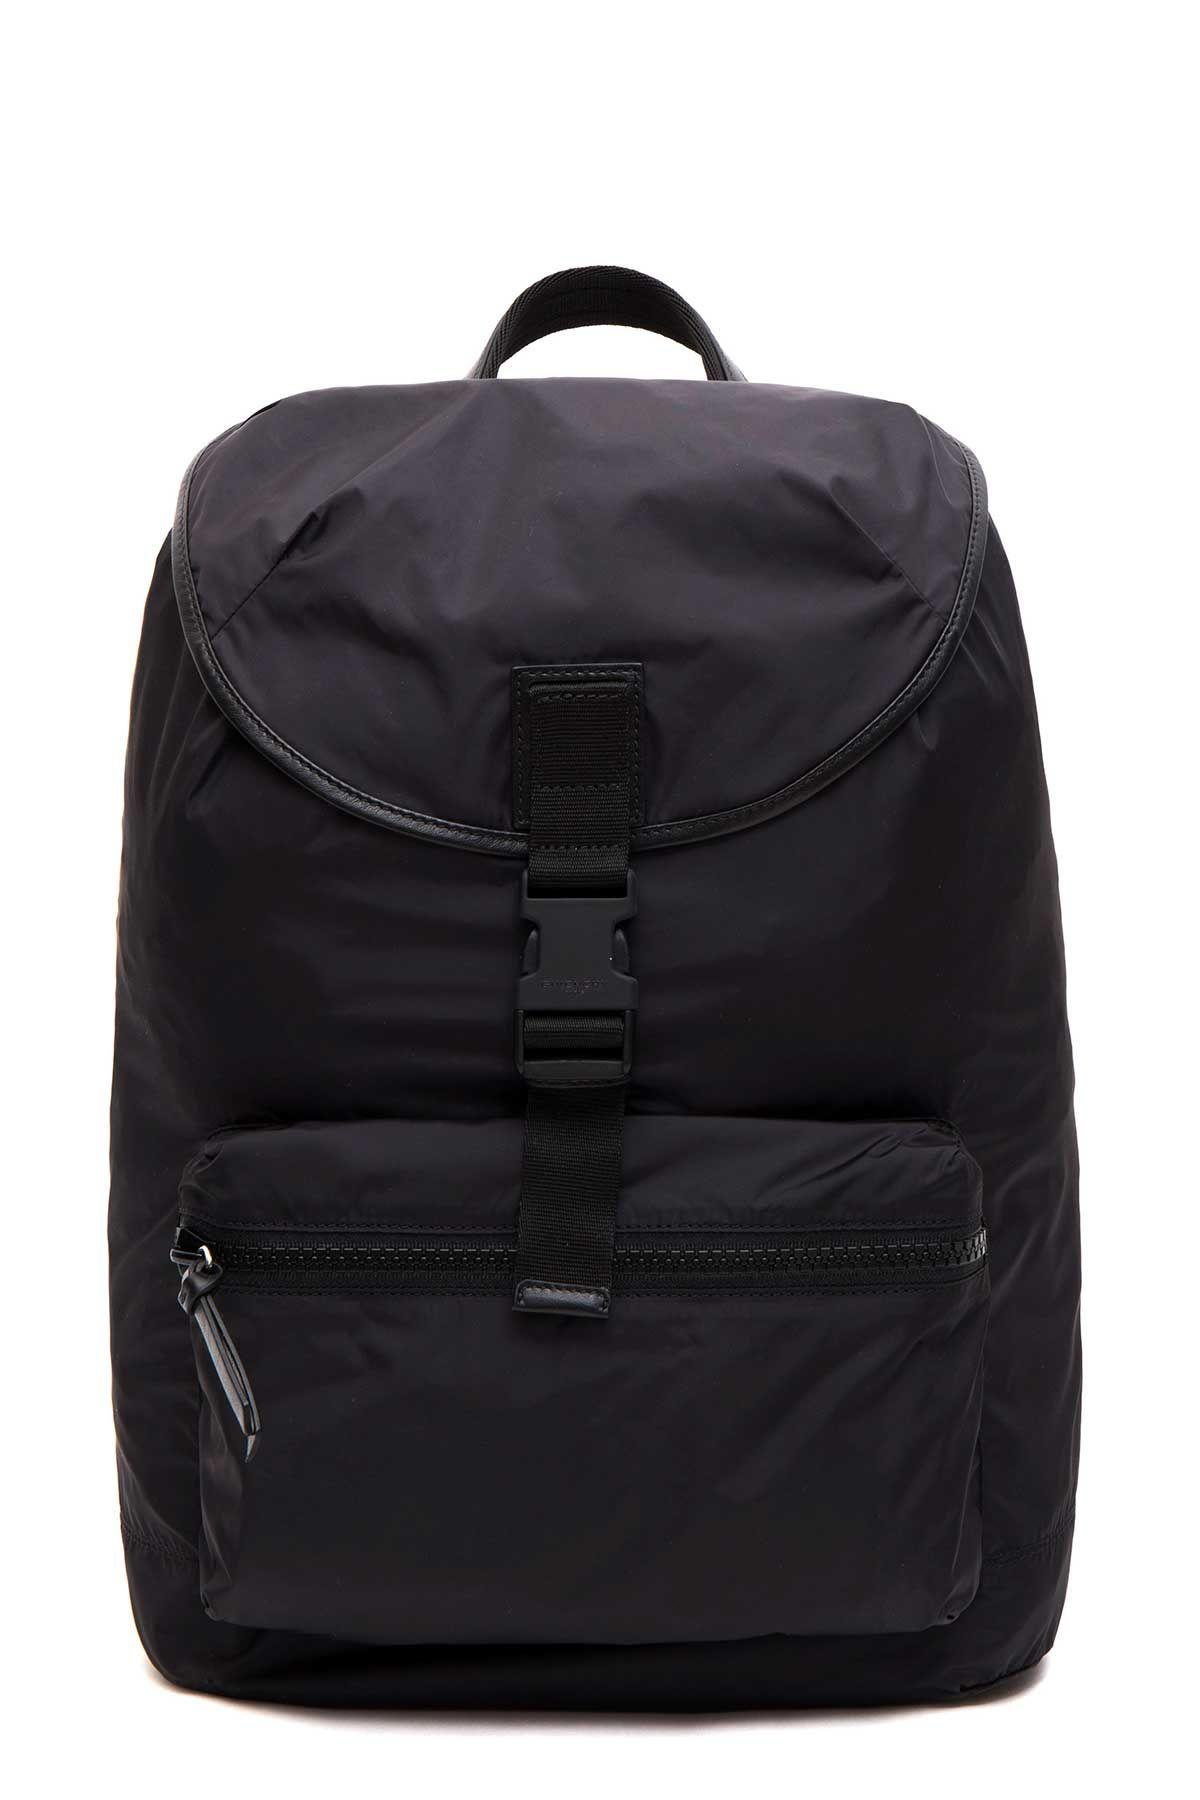 e899cf9cf1 Givenchy Star Trim Packable Backpack In Black  Red